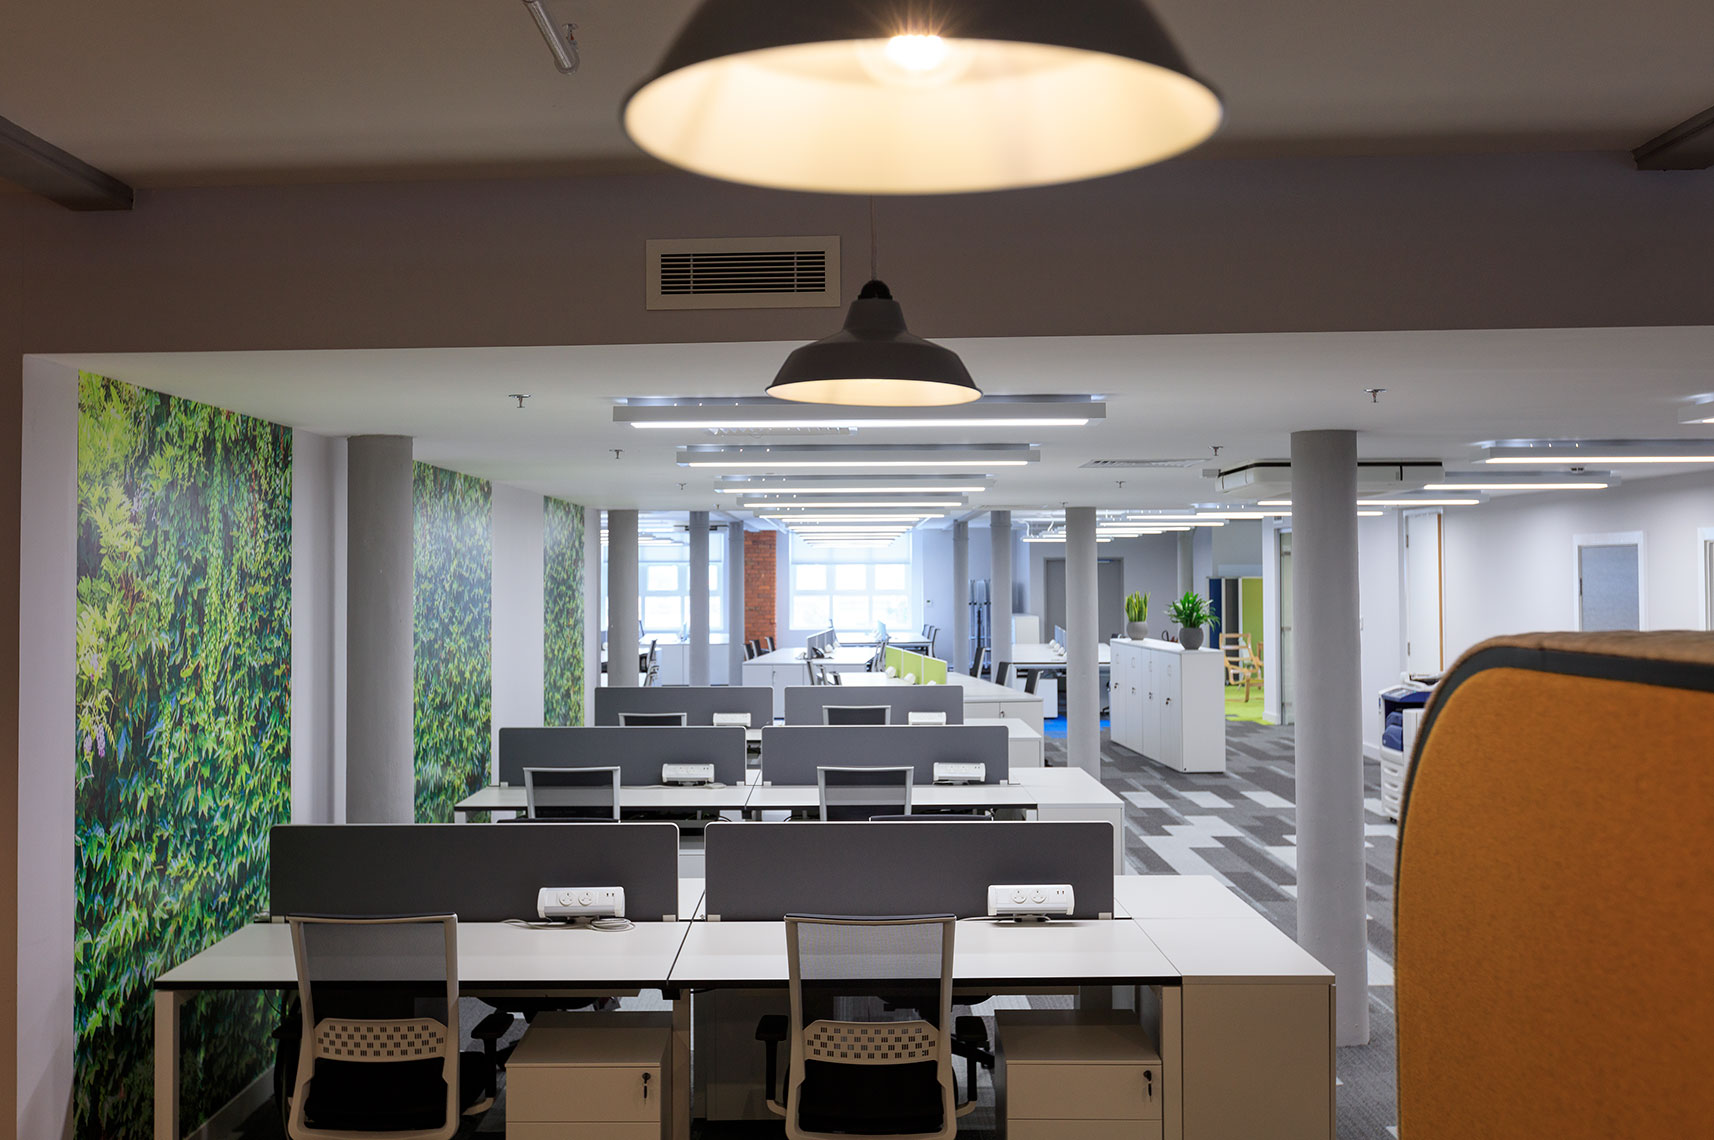 Corporate office spaces decorated with high-end multicoloured desks and natural lighting fixtures